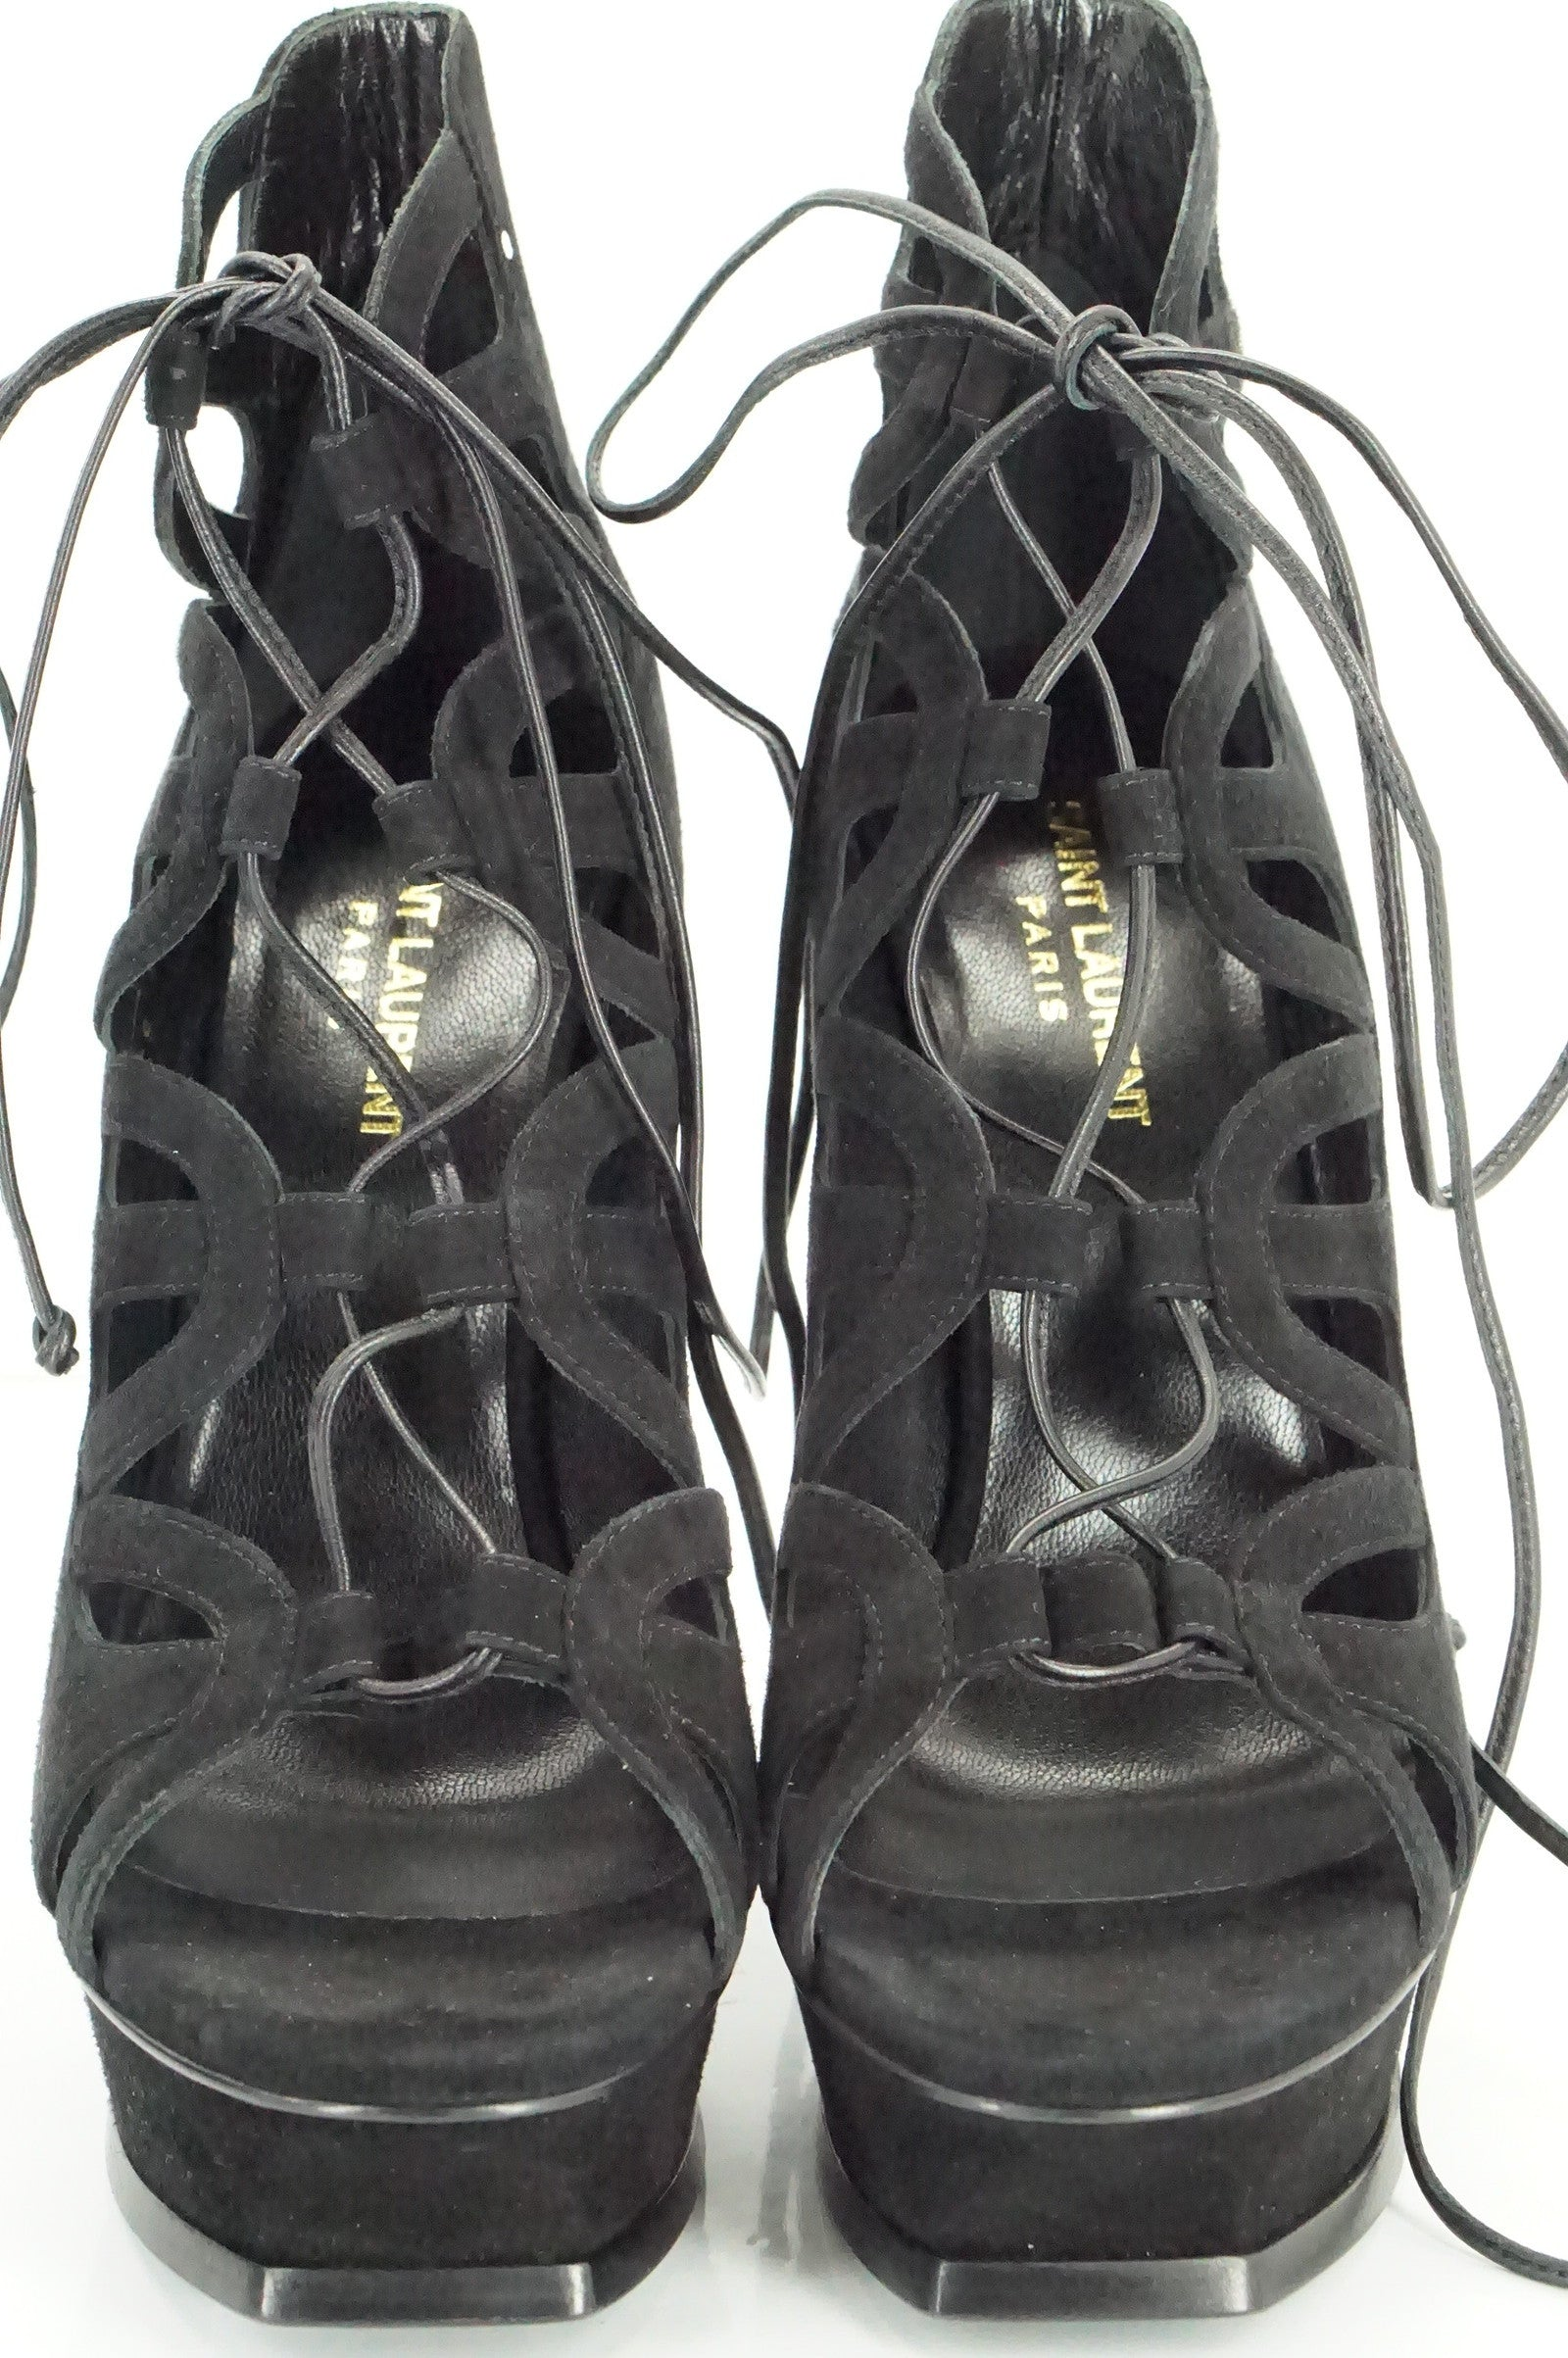 SAINT LAURENT Tribute Lace-Up Platform Sandal SZ 39.5 Black Suede YSL $995 NIB